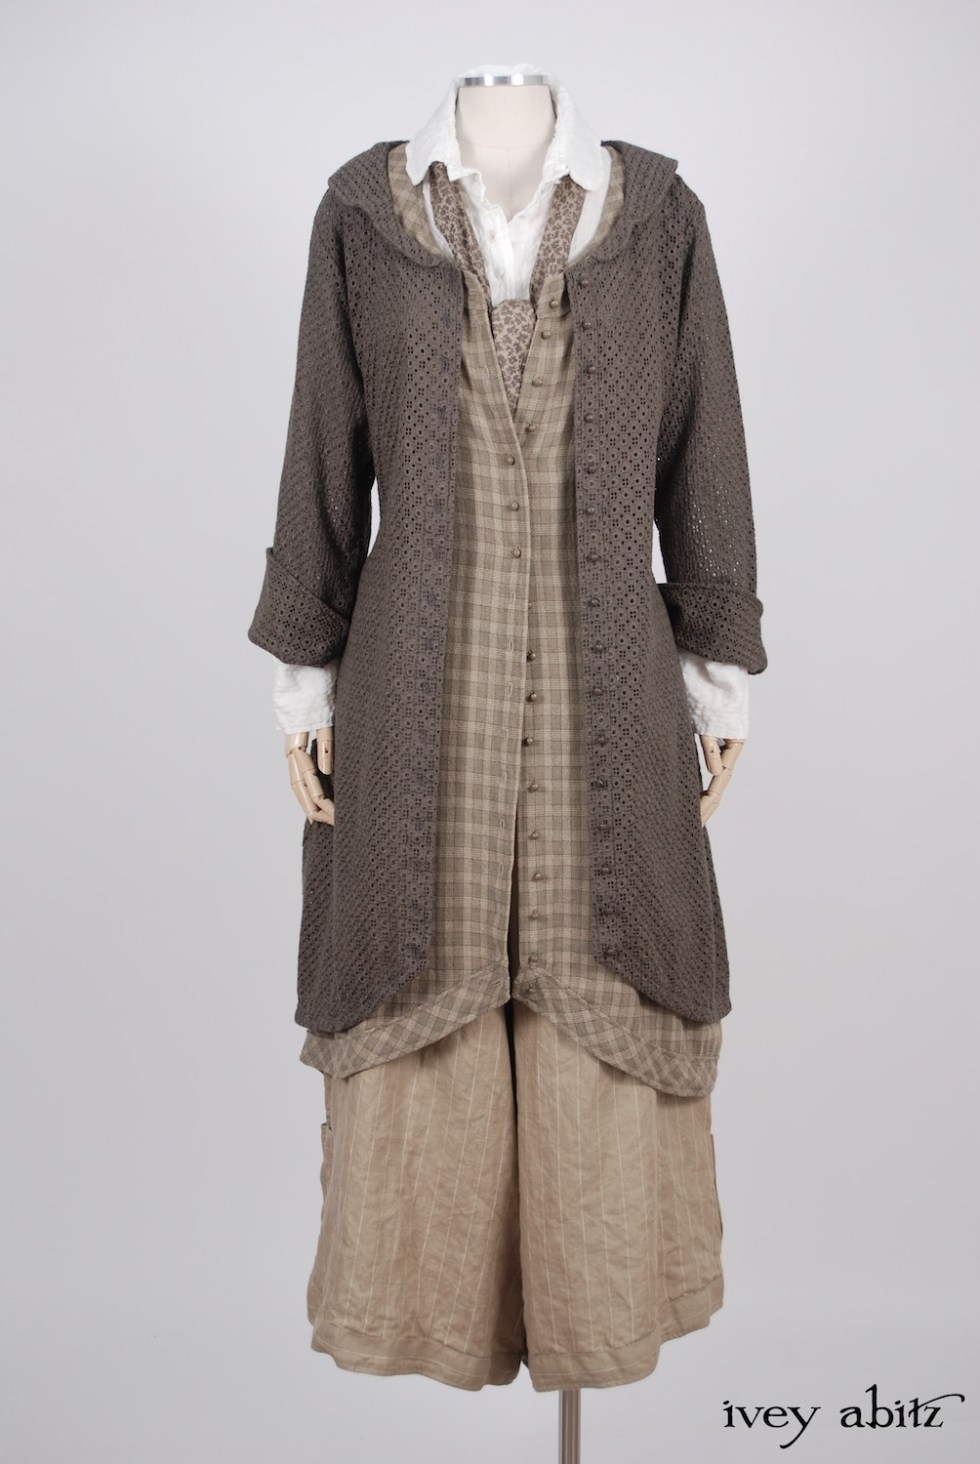 Ivey Abitz - Truitt Duster Coat in Flaxseed Embroidered Eyelet - Truitt Shirt in Dove Striped Voile  - Holkham Hall Necktie in Flaxseed Leafy Silk Linen  - Truitt Frock in Flaxseed Plaid Weave  - Montague Trousers in Sandy Pinstriped Linen, High Water Length